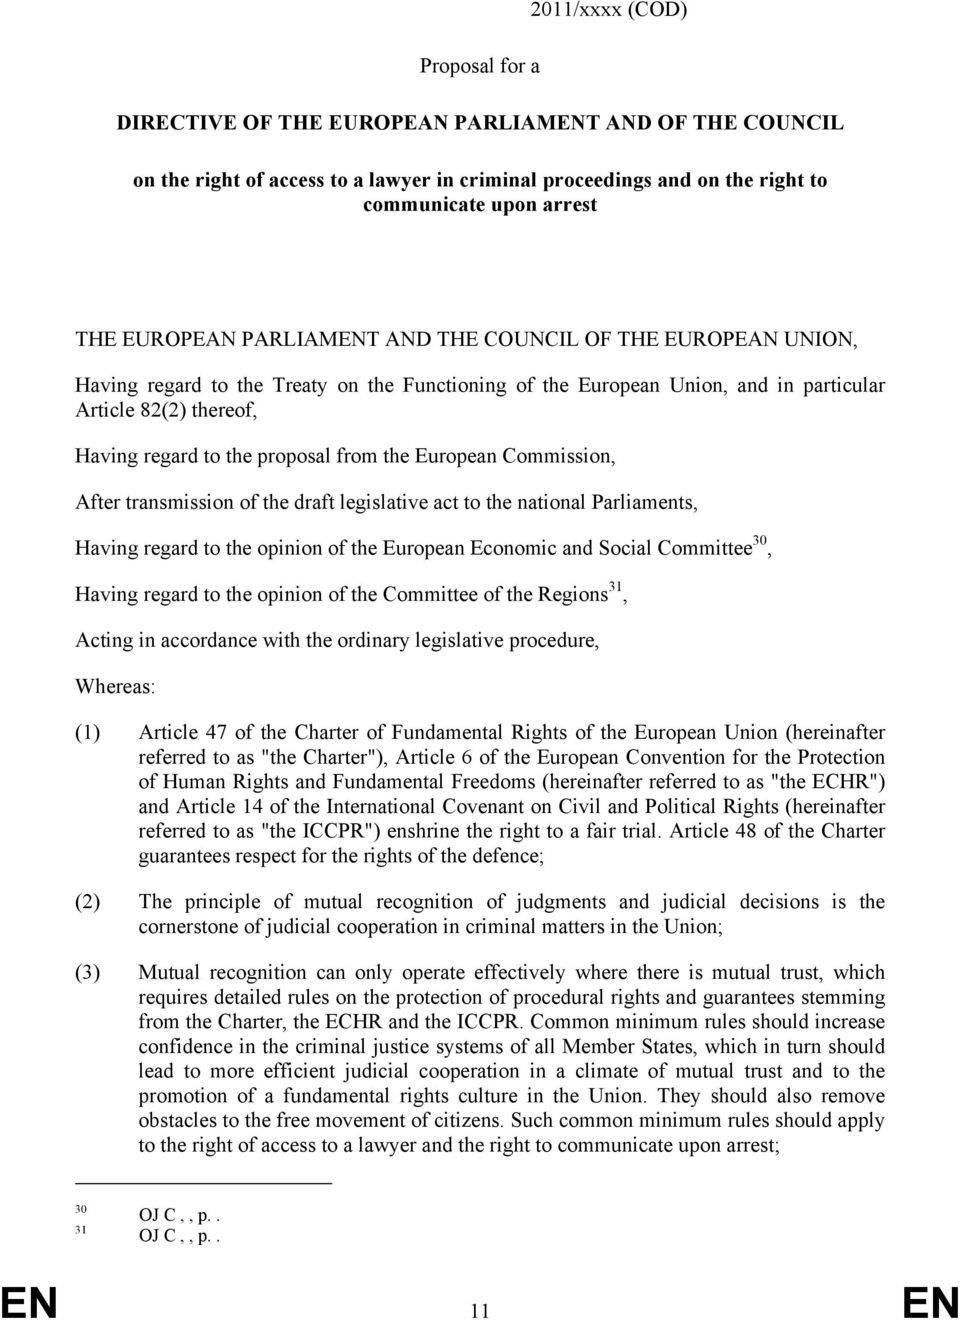 from the European Commission, After transmission of the draft legislative act to the national Parliaments, Having regard to the opinion of the European Economic and Social Committee 30, Having regard